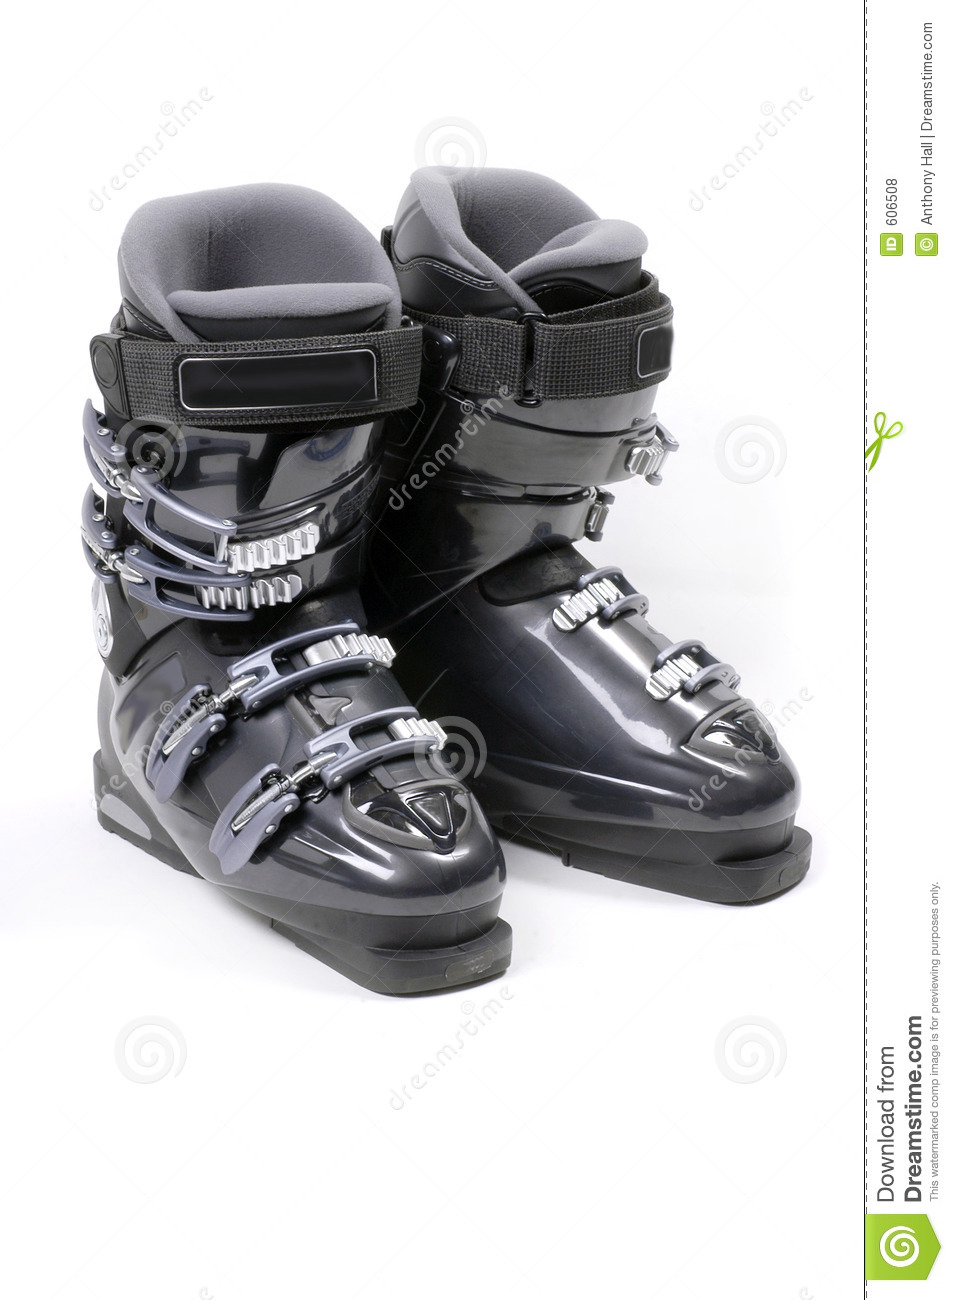 Pair Of Ski Boots Royalty Free Stock Photos Image 606508